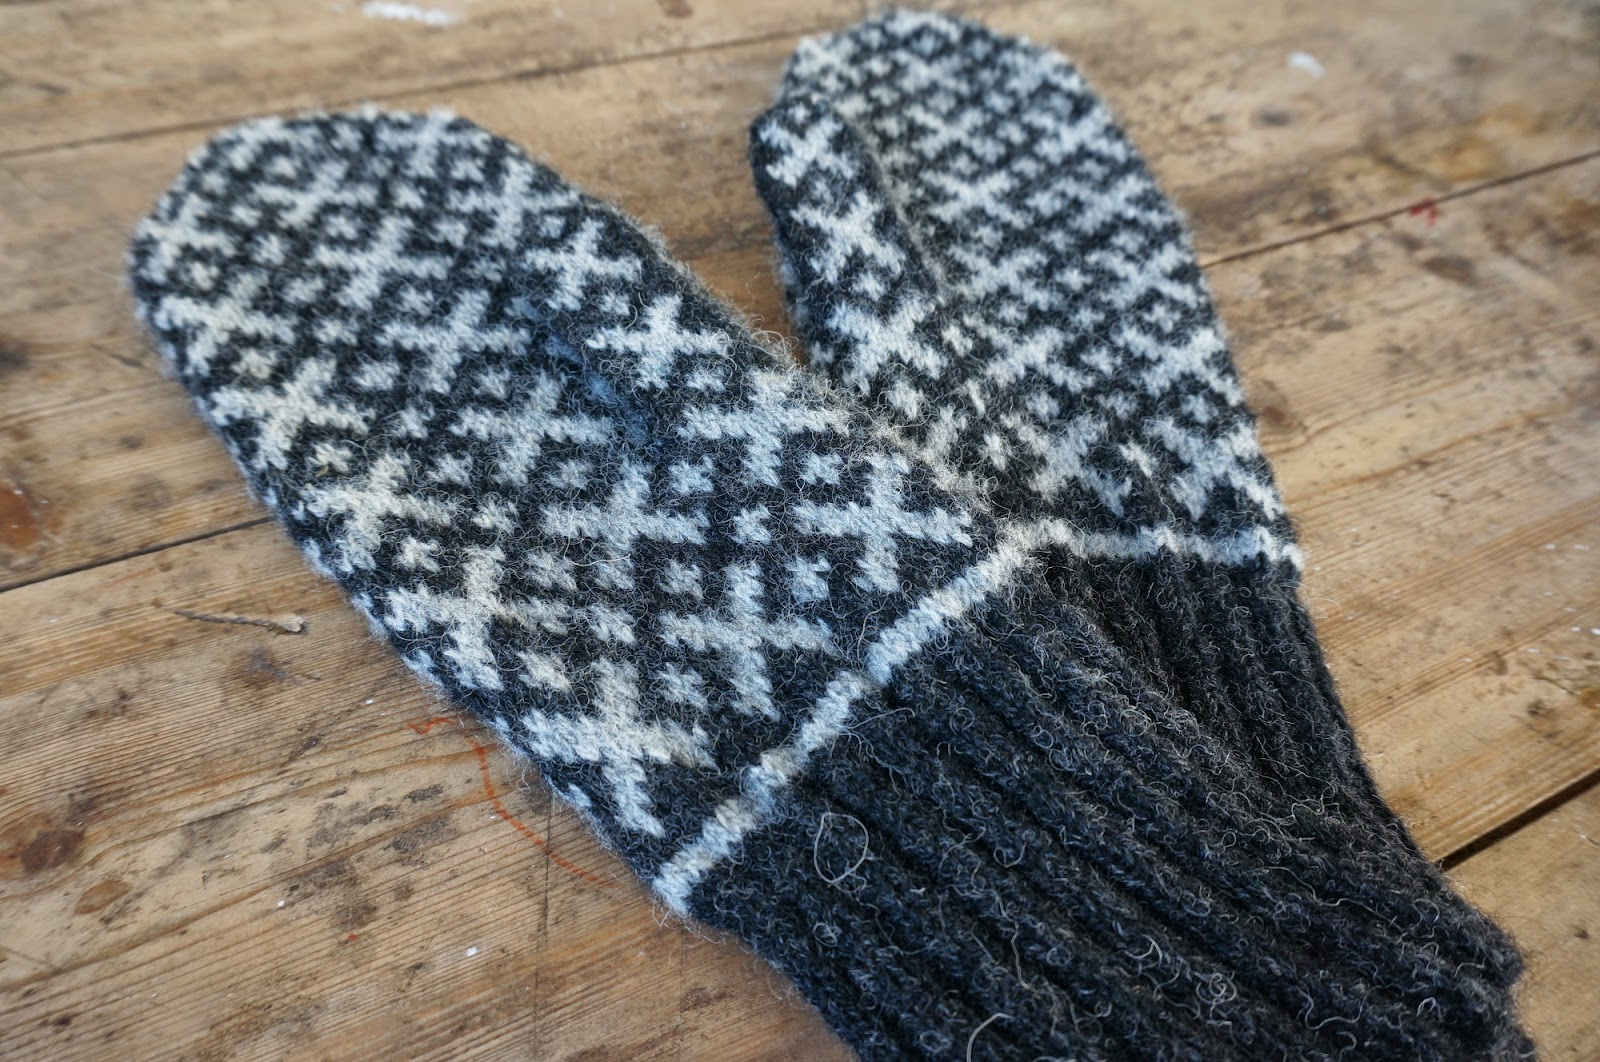 Donna Smith Designs: Mittens to Dress